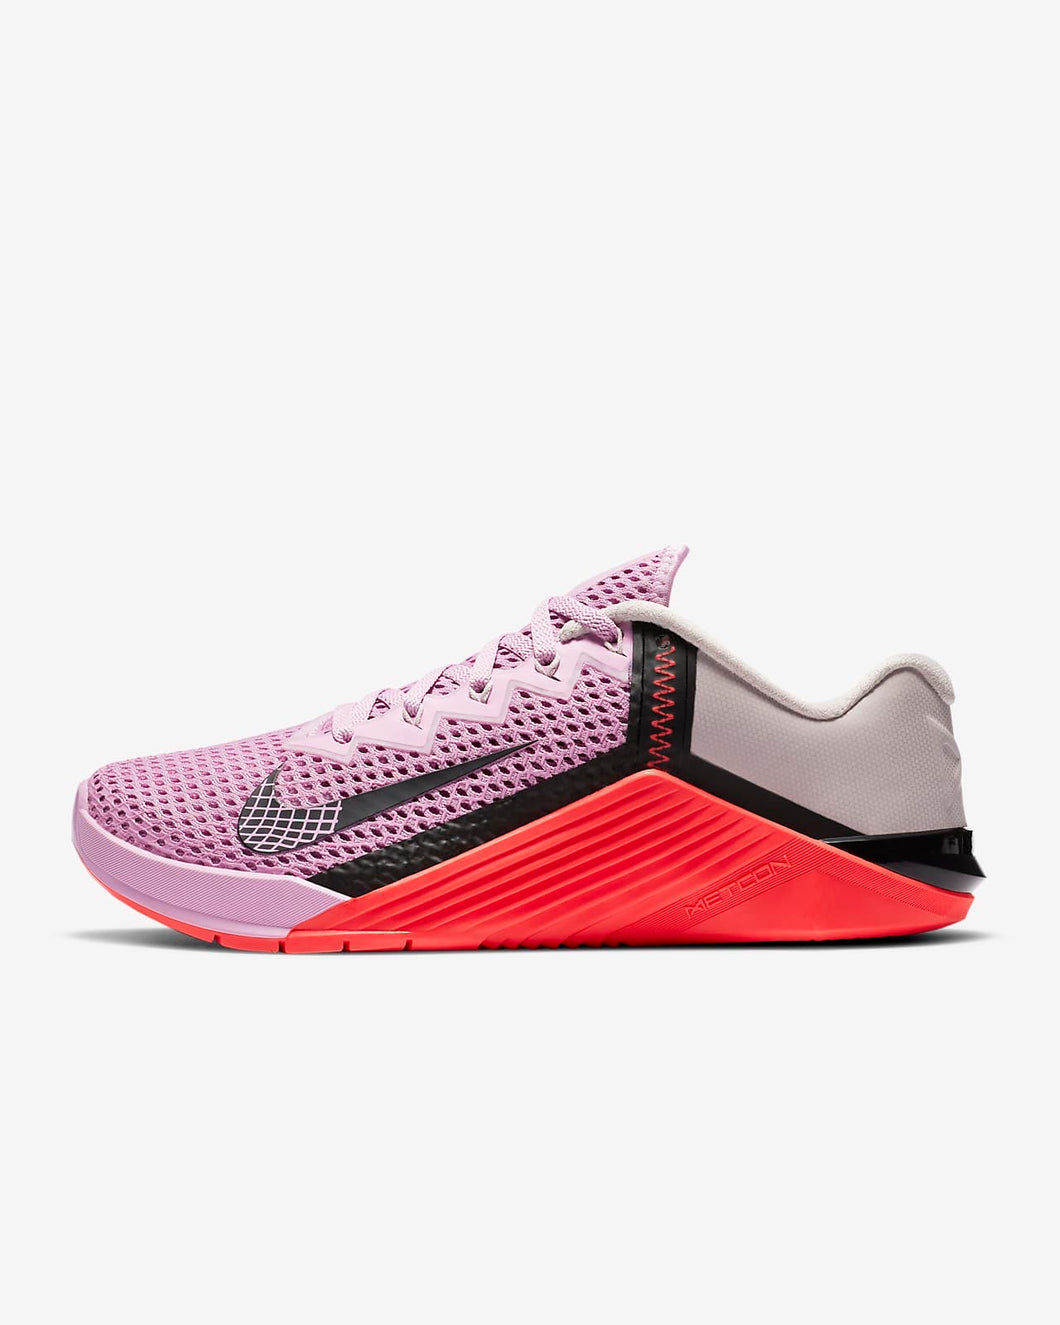 Nike Metcon 6 Women's Training Shoe - Beyond Pink/Flash Crimson/Platinum Violet/Black